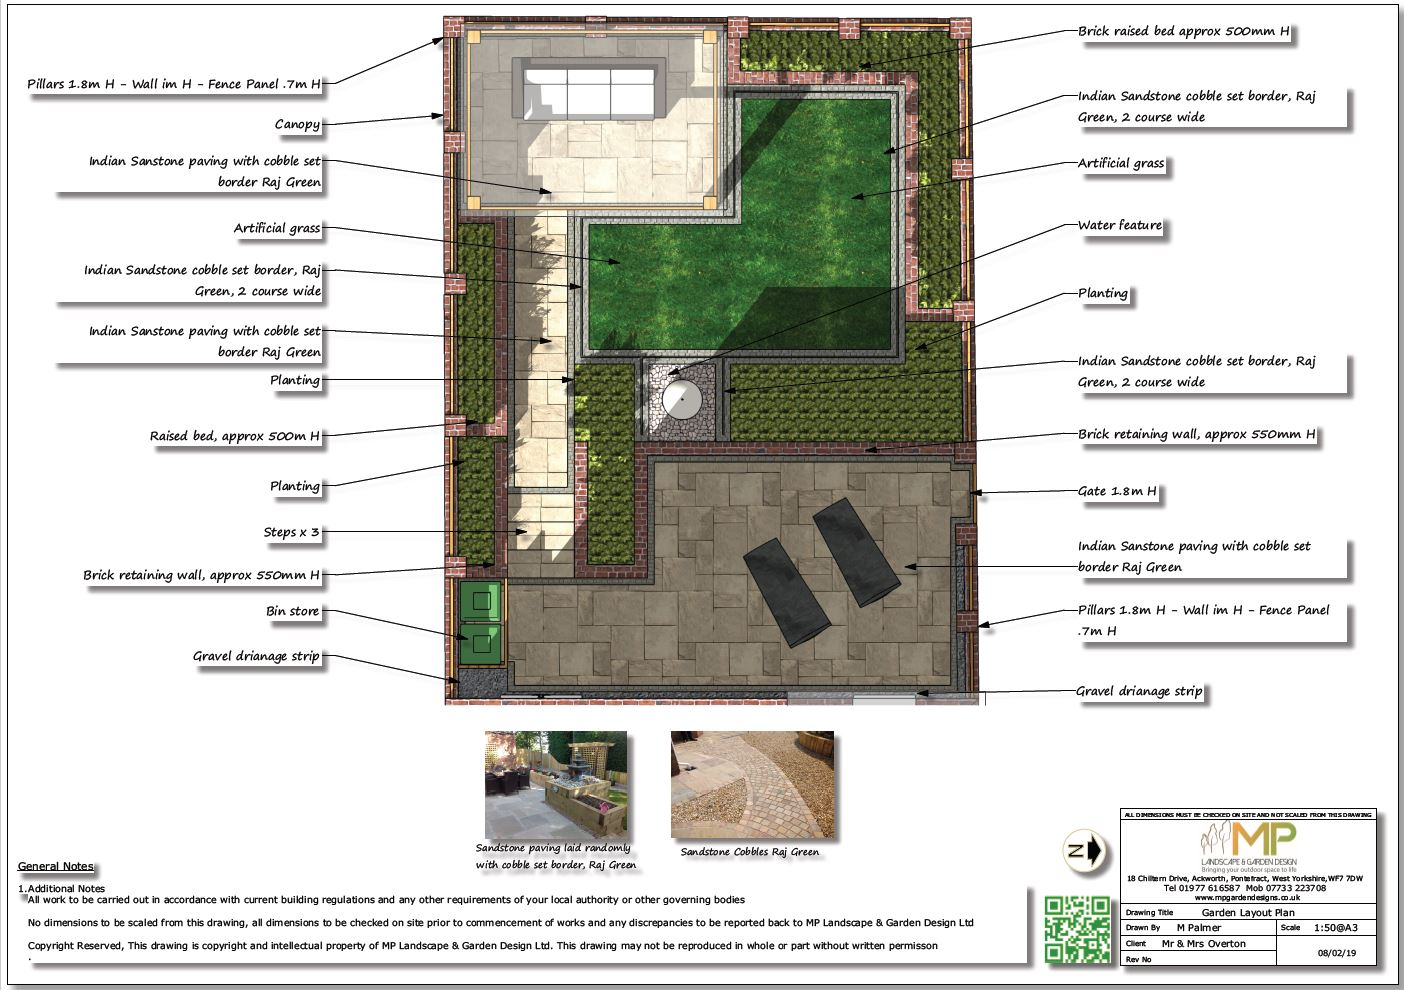 Colour garden layout plan for a property in Pontefract.